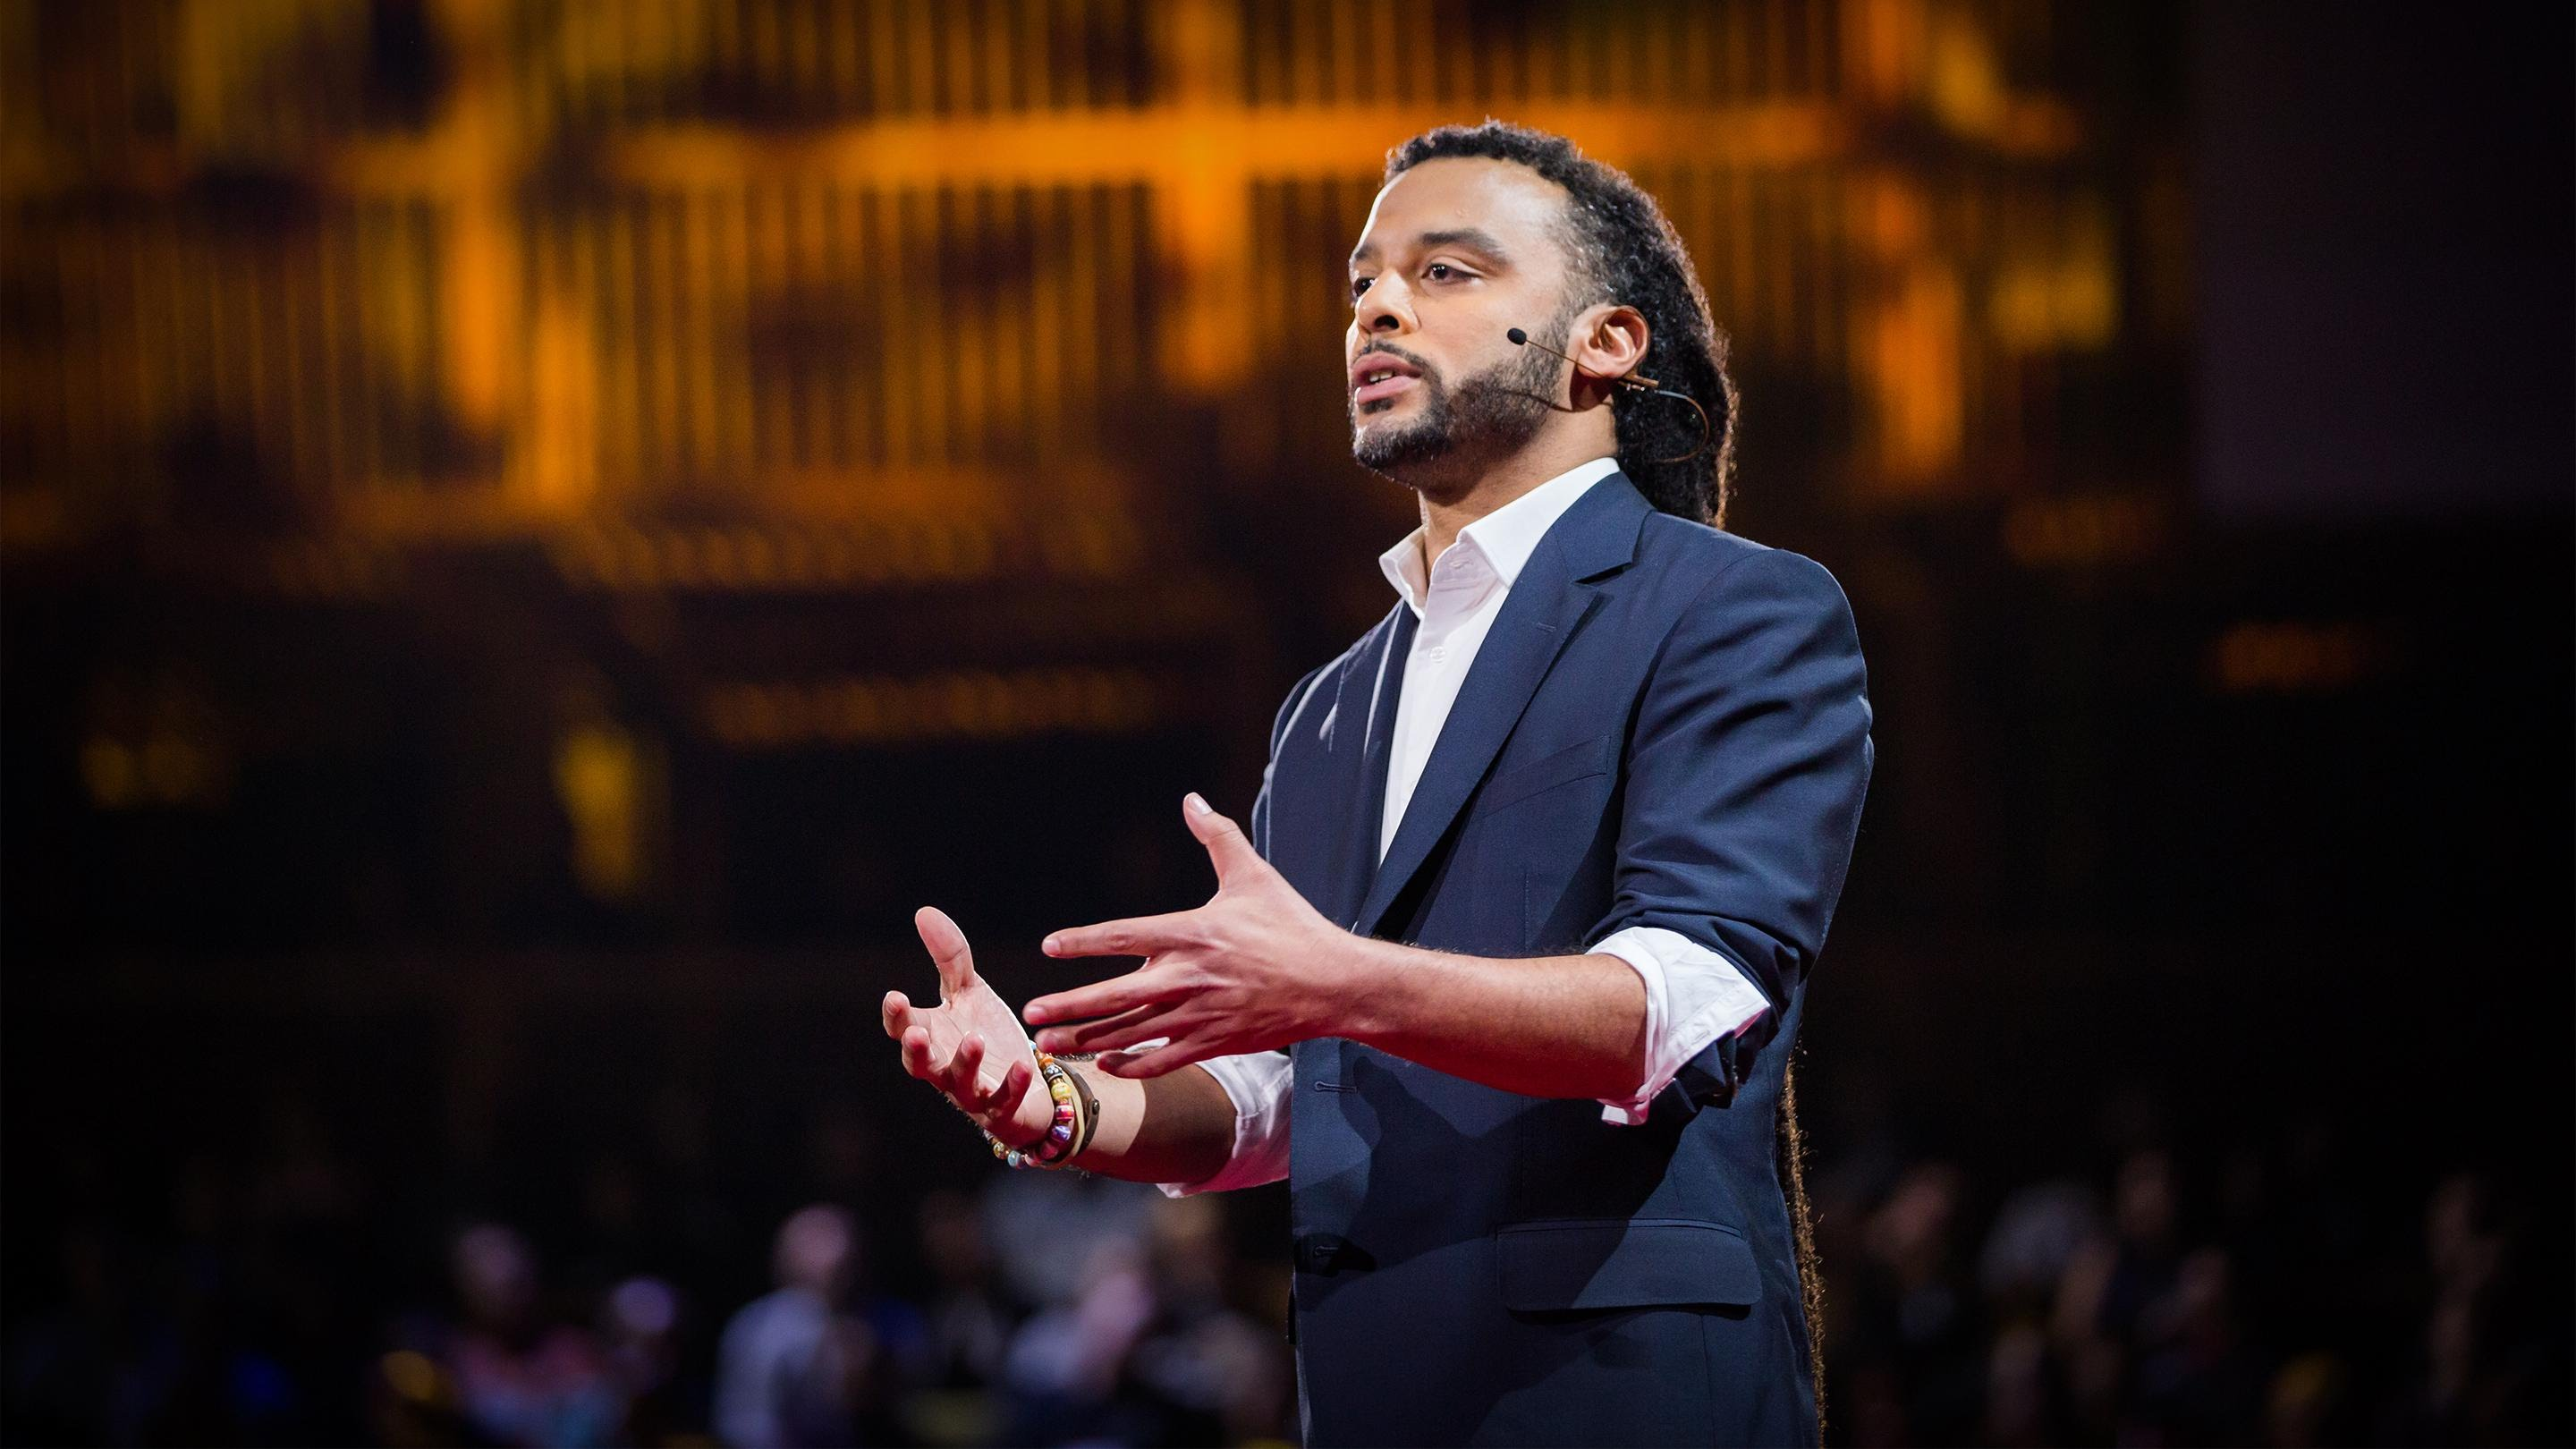 Adam Foss, Ted Talk, A Prosecutor's Vision for a Better Justice System